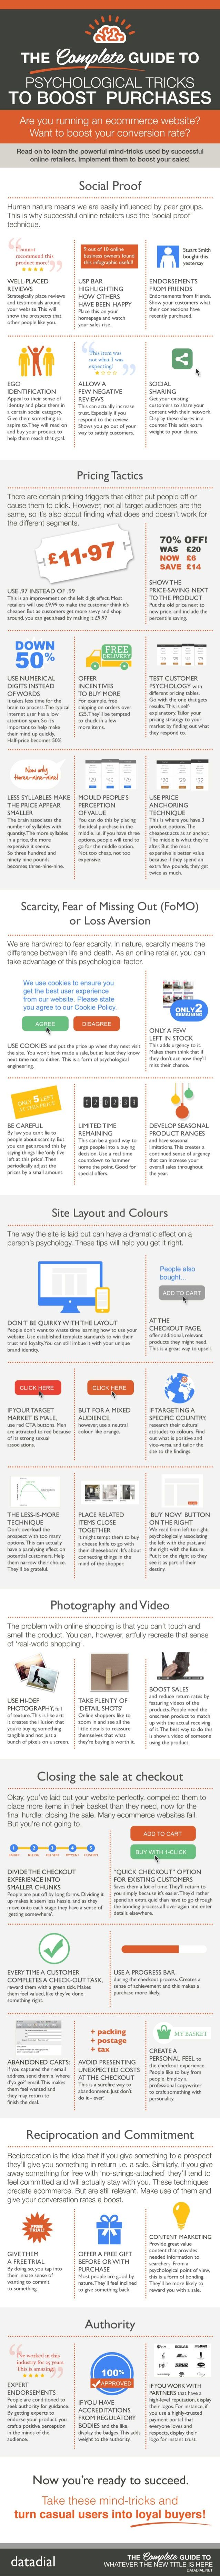 Psychological Strategies to Increase eCommerce Sales [Infographic]